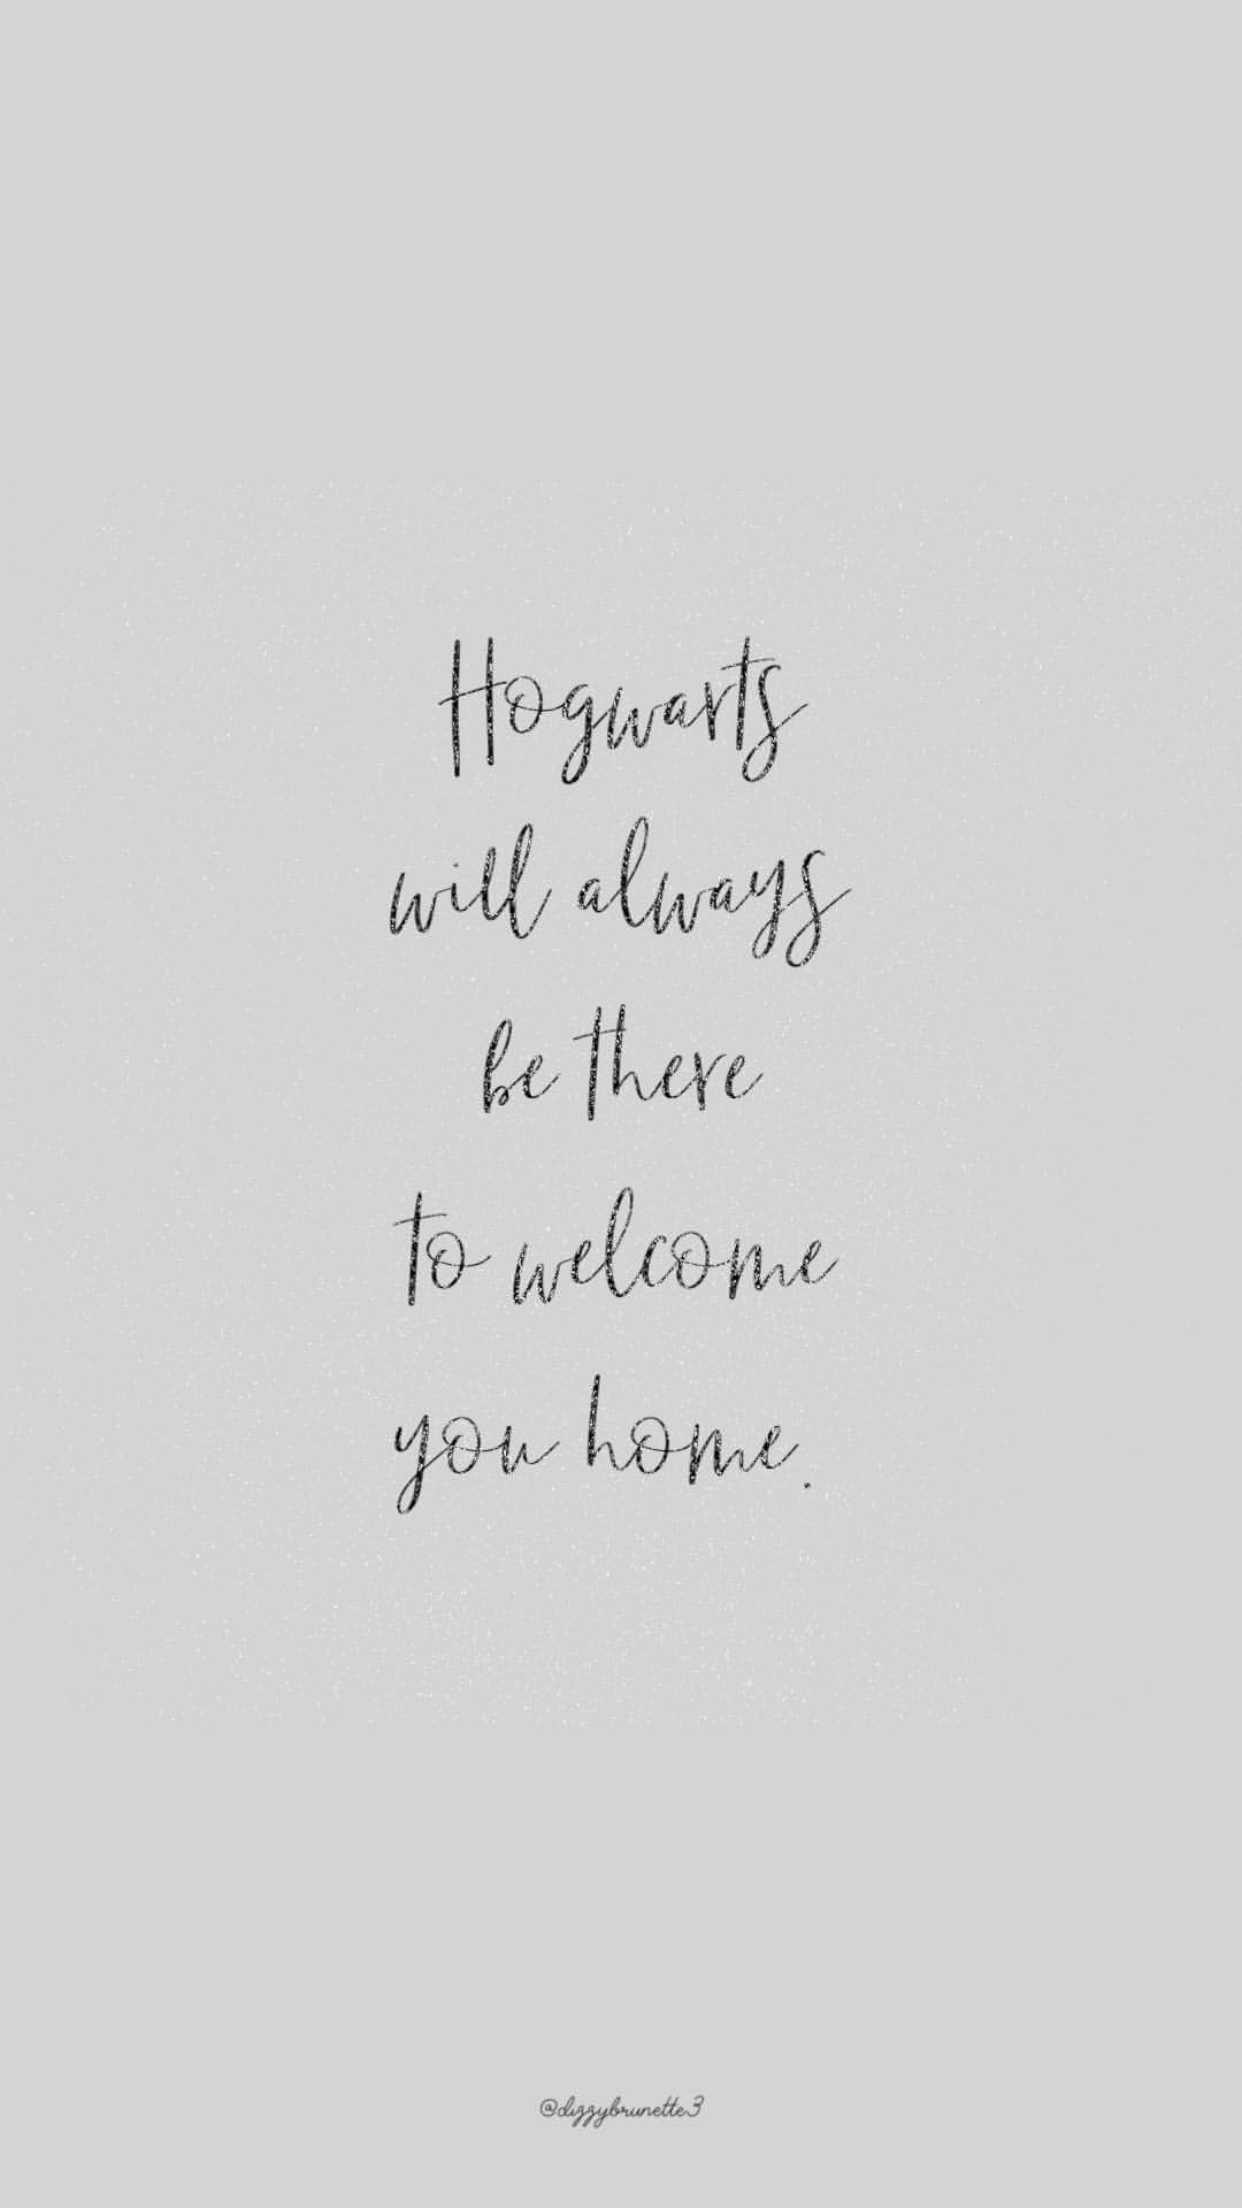 Pin By Lillybeth On Quotes Harry Potter Aesthetic Harry Potter Wallpaper Harry Potter Wallpaper Phone